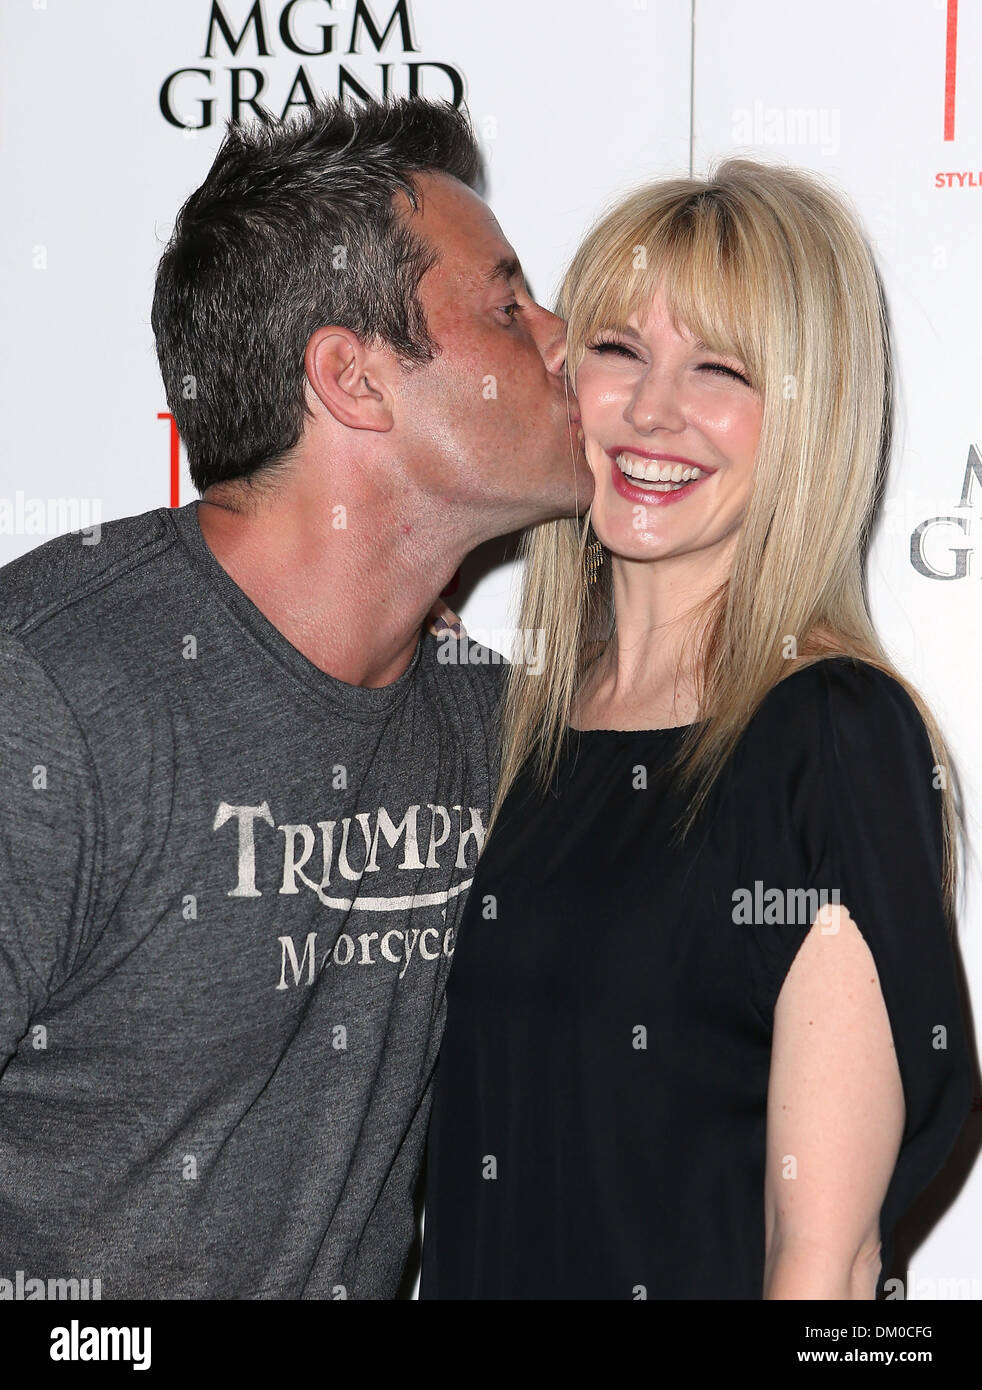 Johnny Messner Kathryn Morris She Wants Me Cast Celebrates Dvd Stock Photo Alamy The film follows a former detective who vows to avenge his estrange son's death and eventually takes on the local mob. https www alamy com johnny messner kathryn morris she wants me cast celebrates dvd release image63934068 html